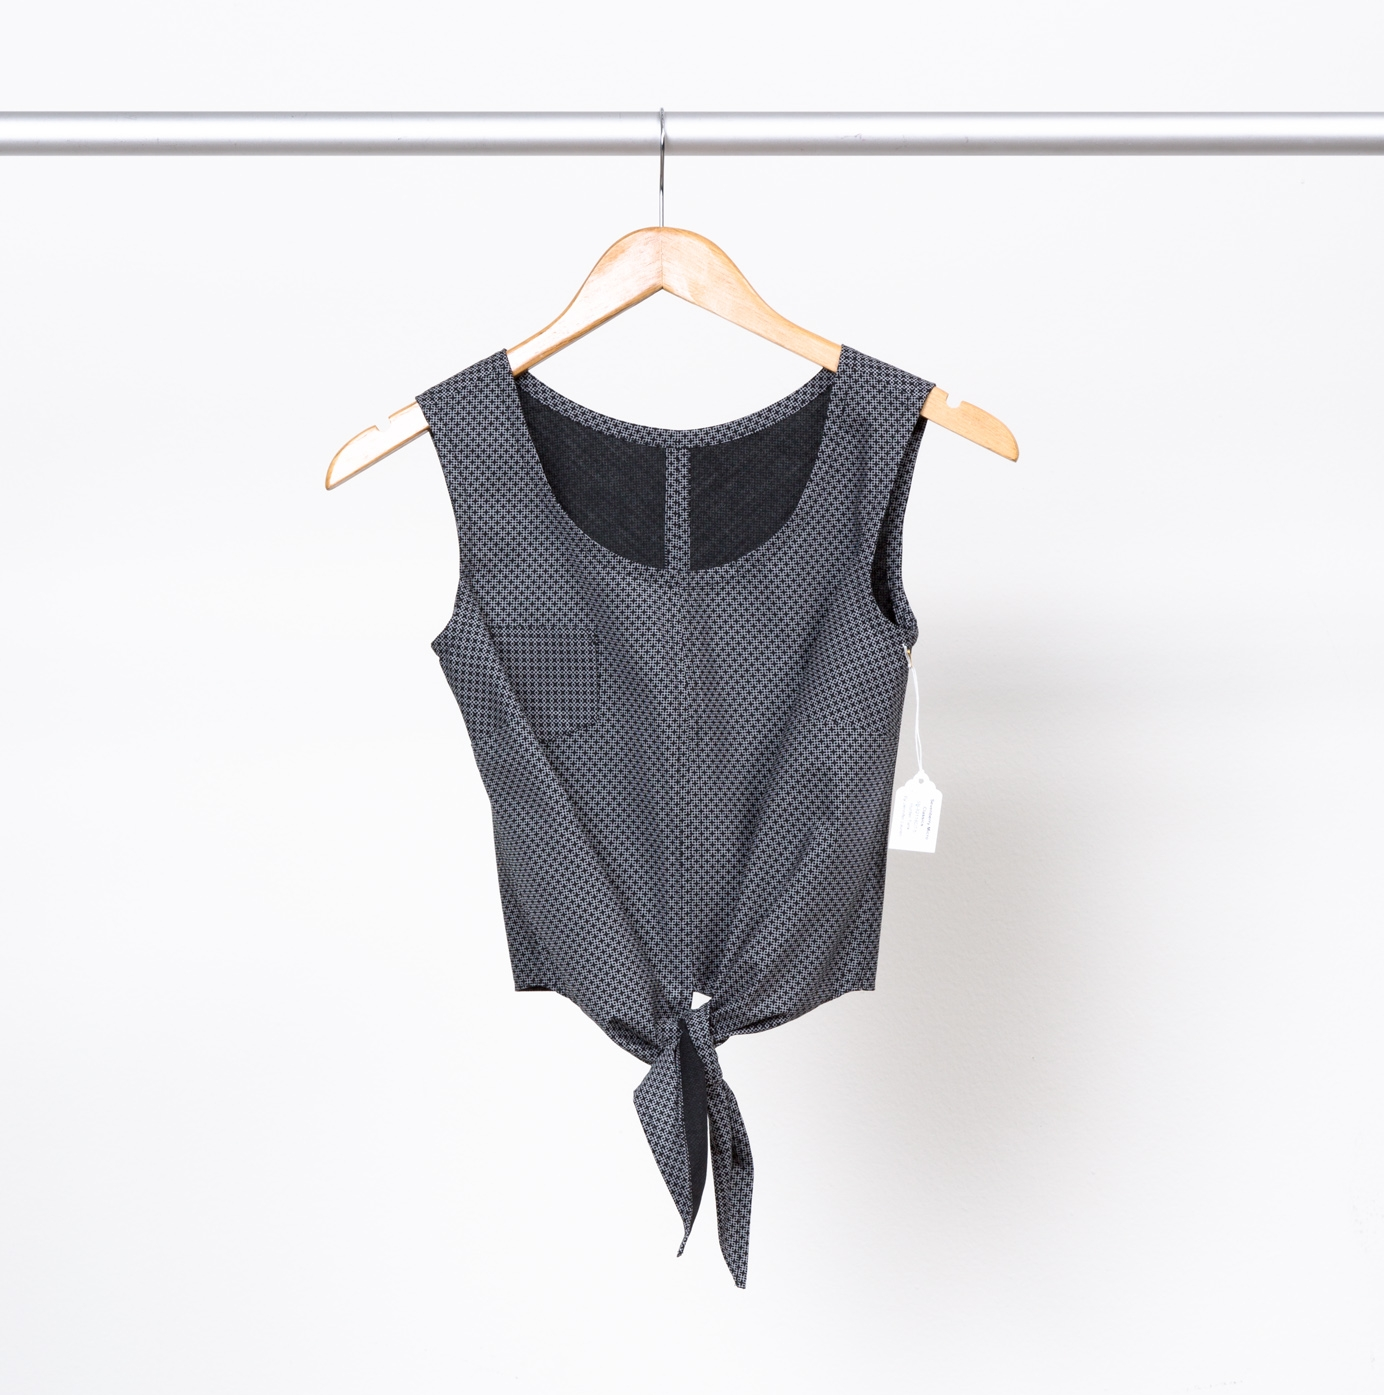 HUNTER TANK   BY   JENNIFER LAUREN HANDMADE ,  SEVENBERRY: MICRO CLASSICS